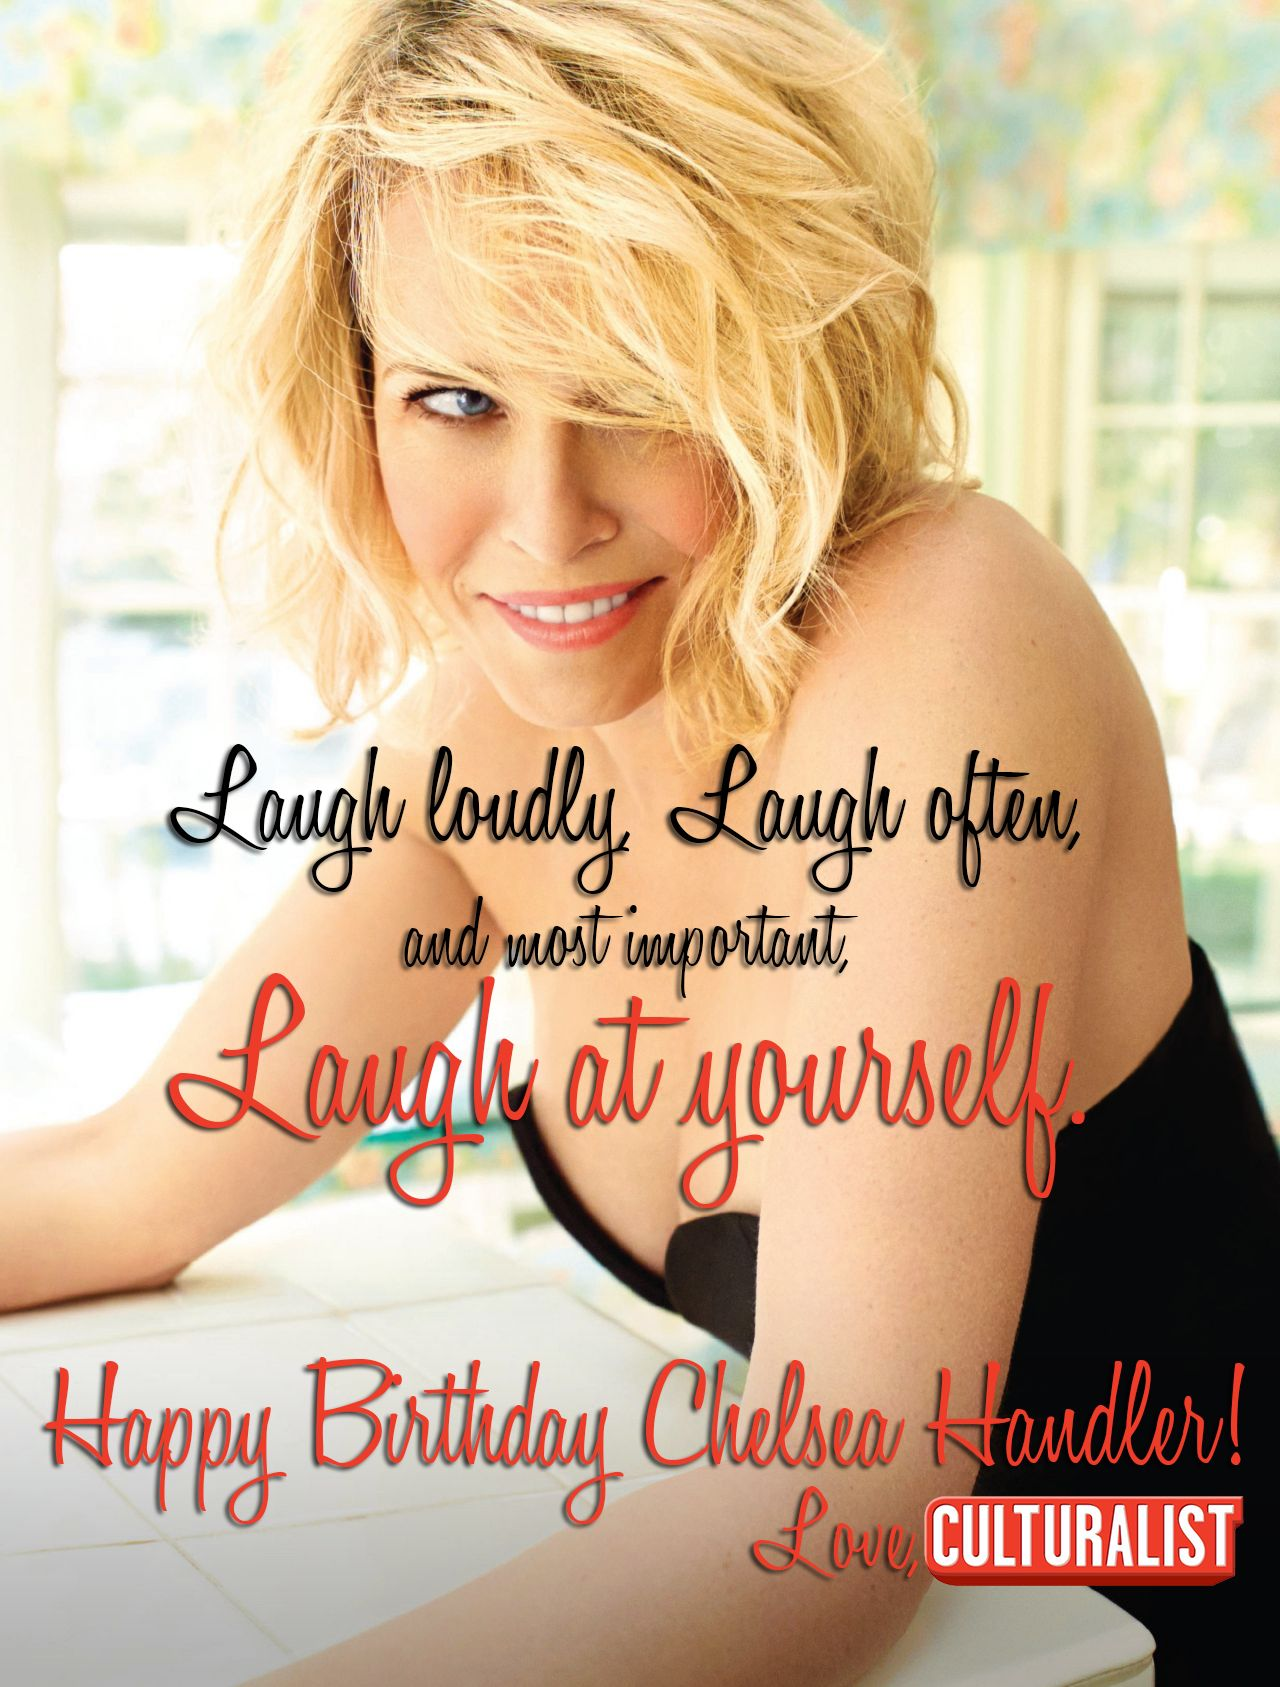 2446f779cff0f1eef50059ae0d07325f happy birthday chelsea handler! add her to your top10 female